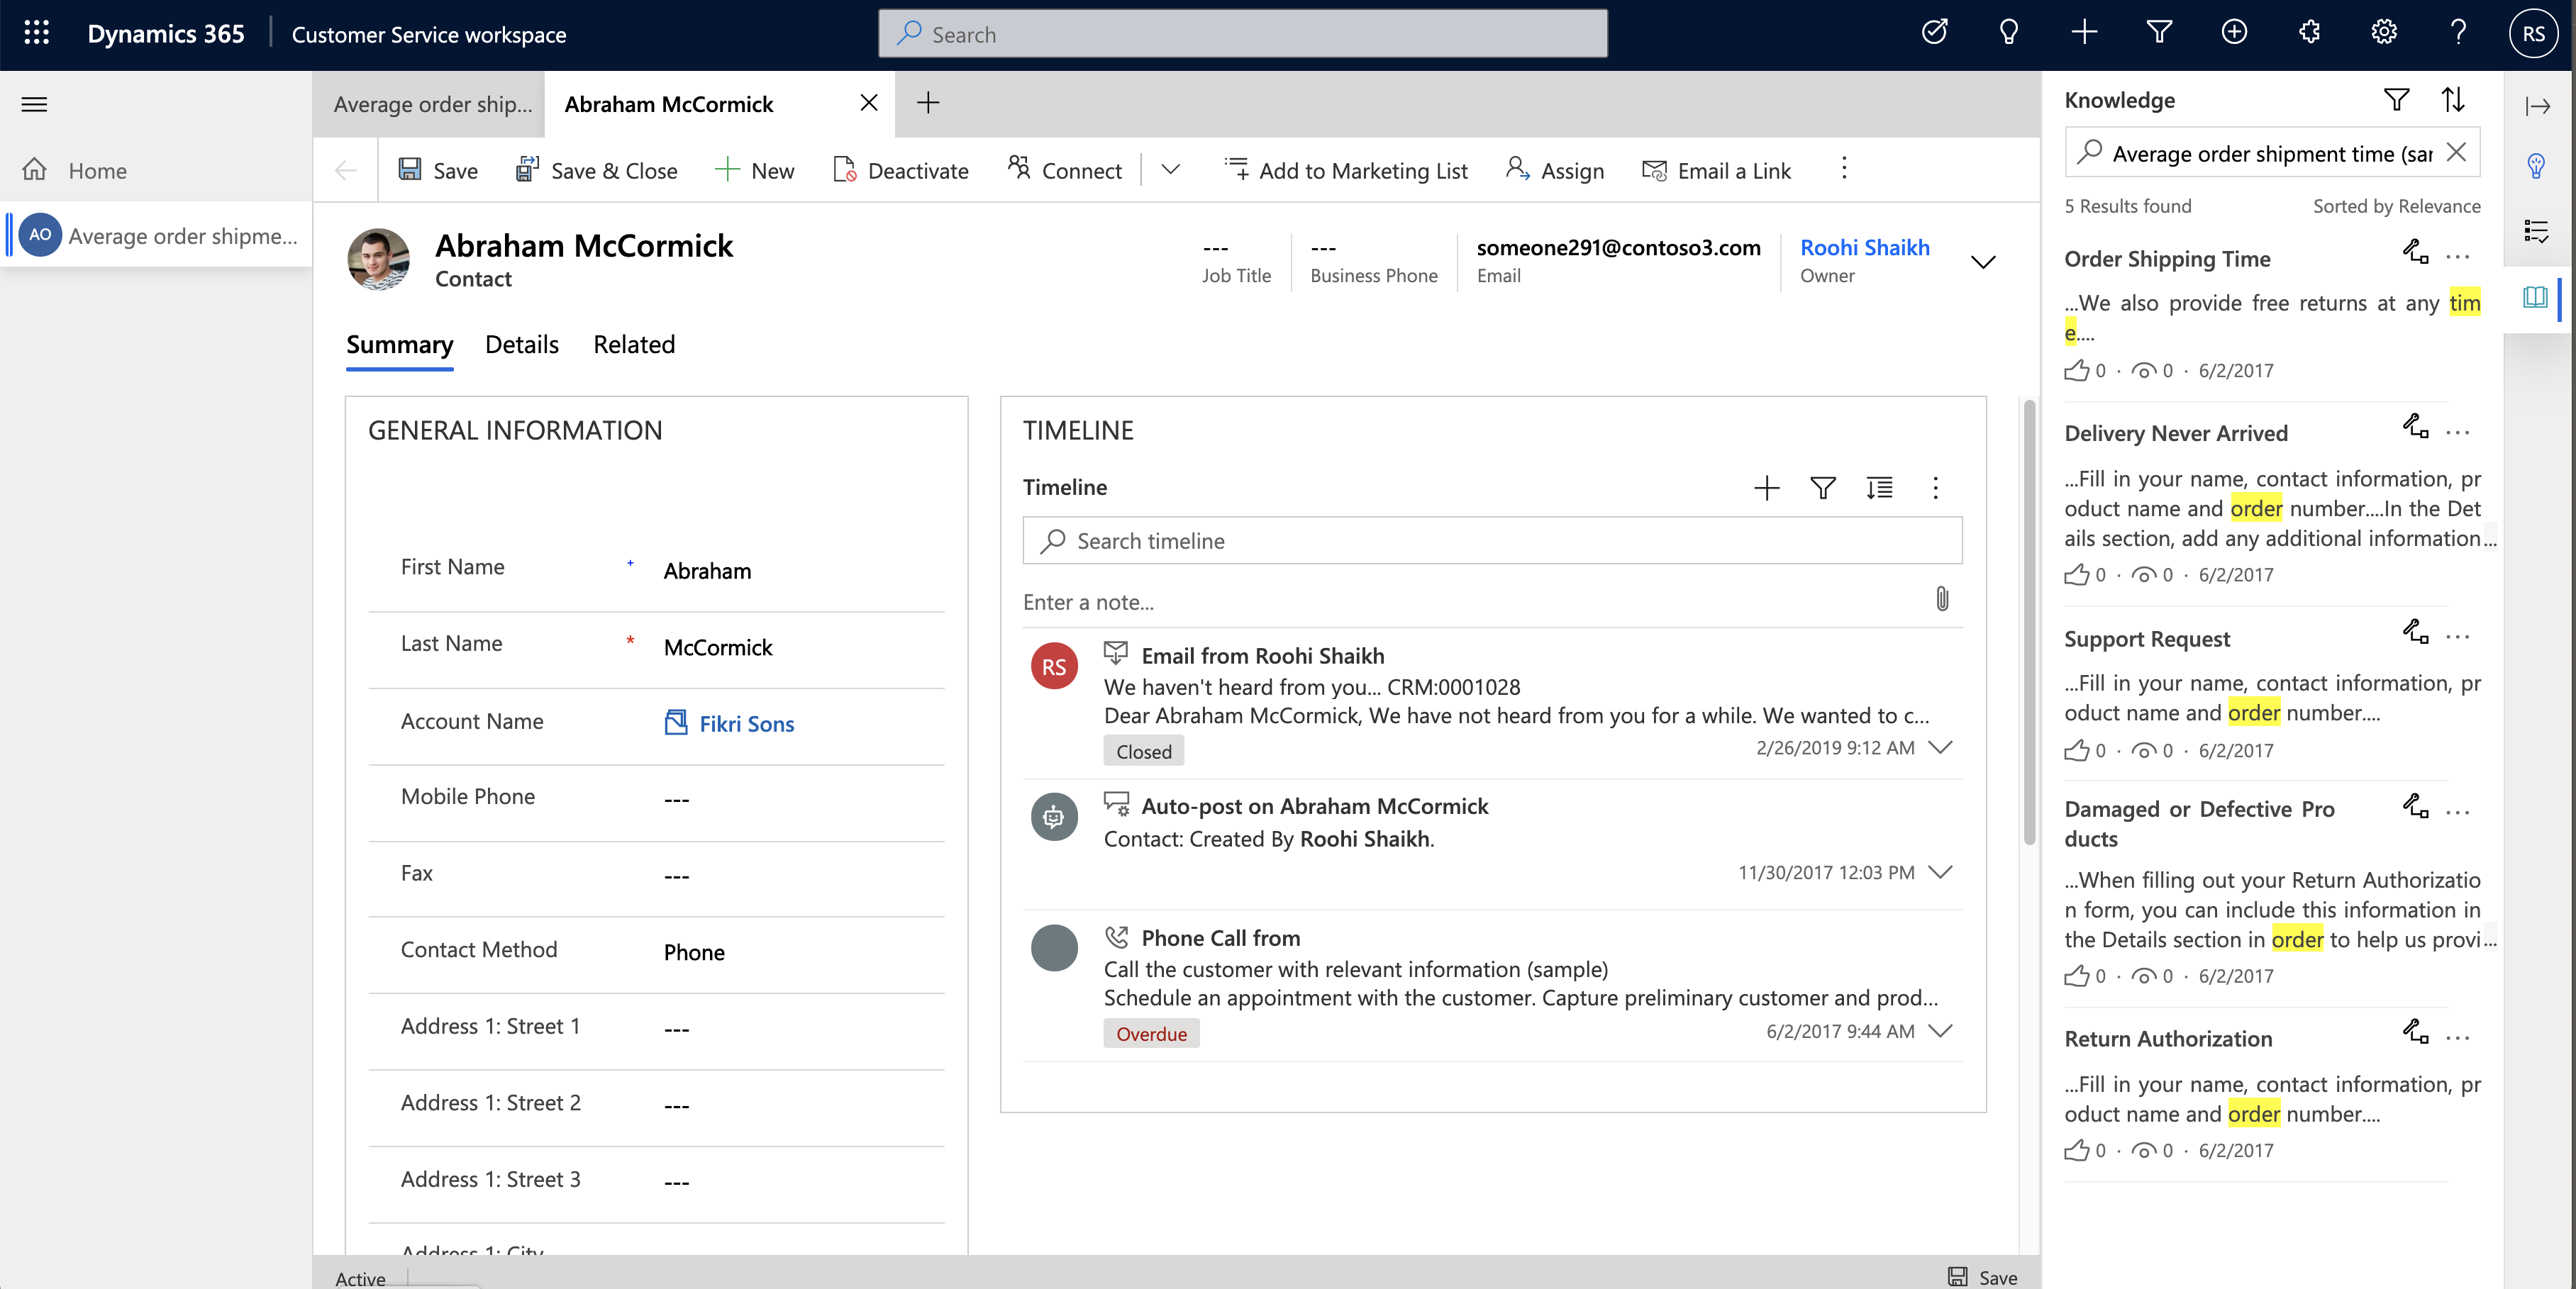 Multi-Session Customer Service workspace app now available with 2020 Release Wave 2